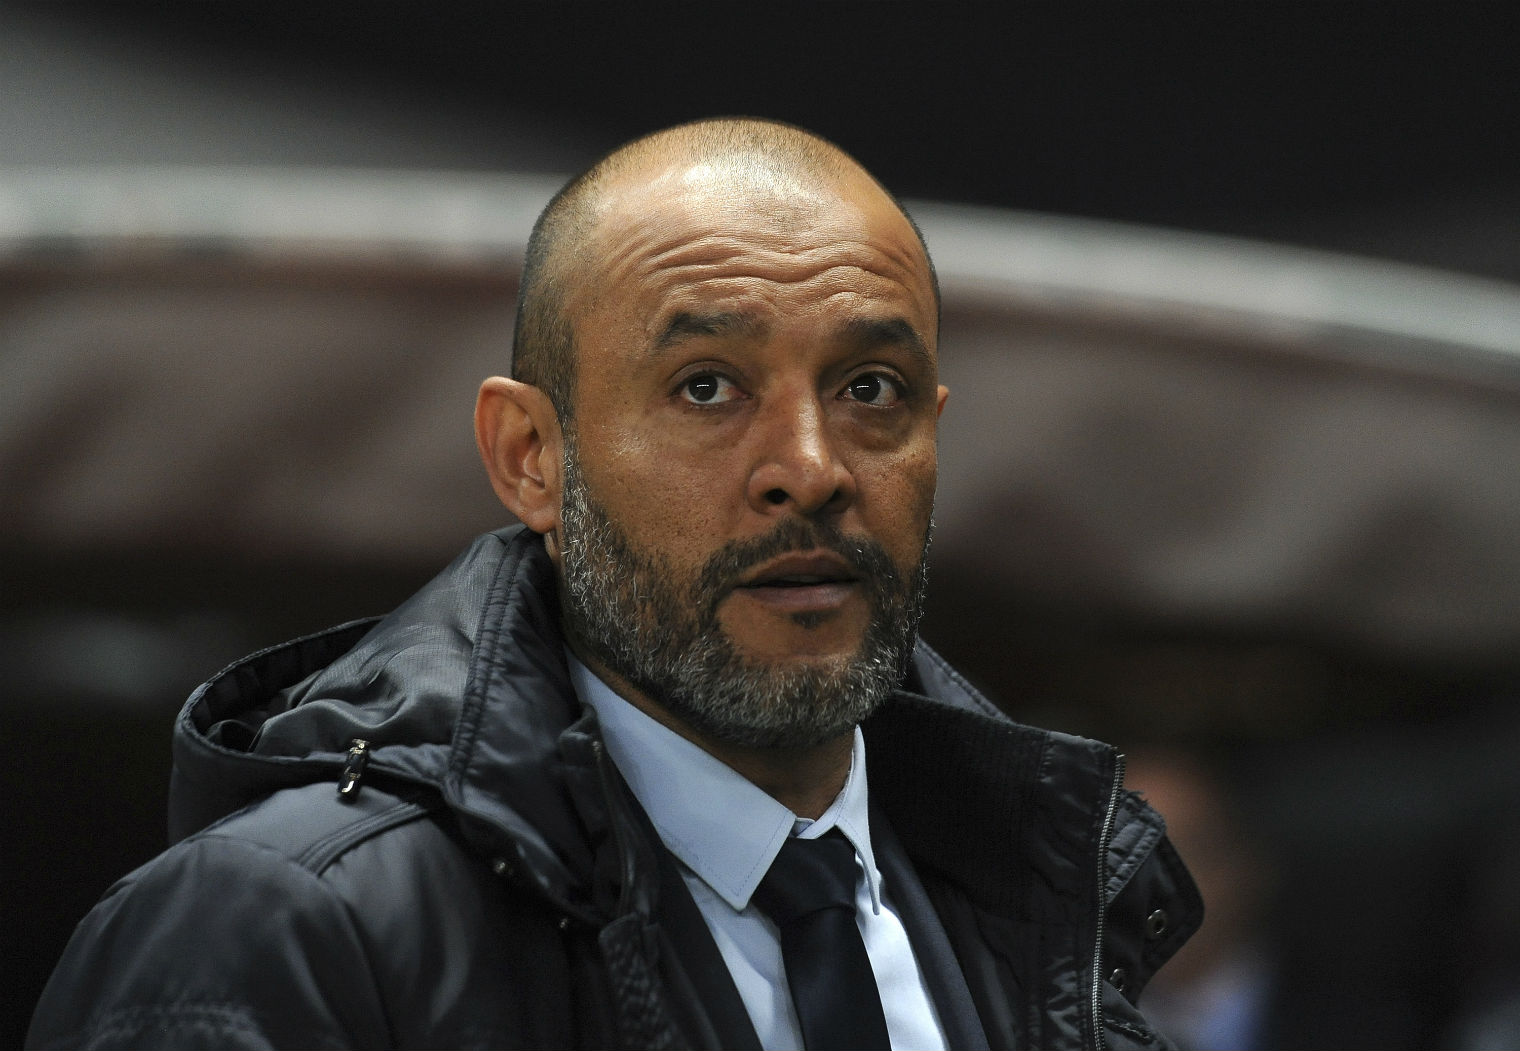 Nuno Espirito Santo manager of Wolves, Wolves vs Man City odds